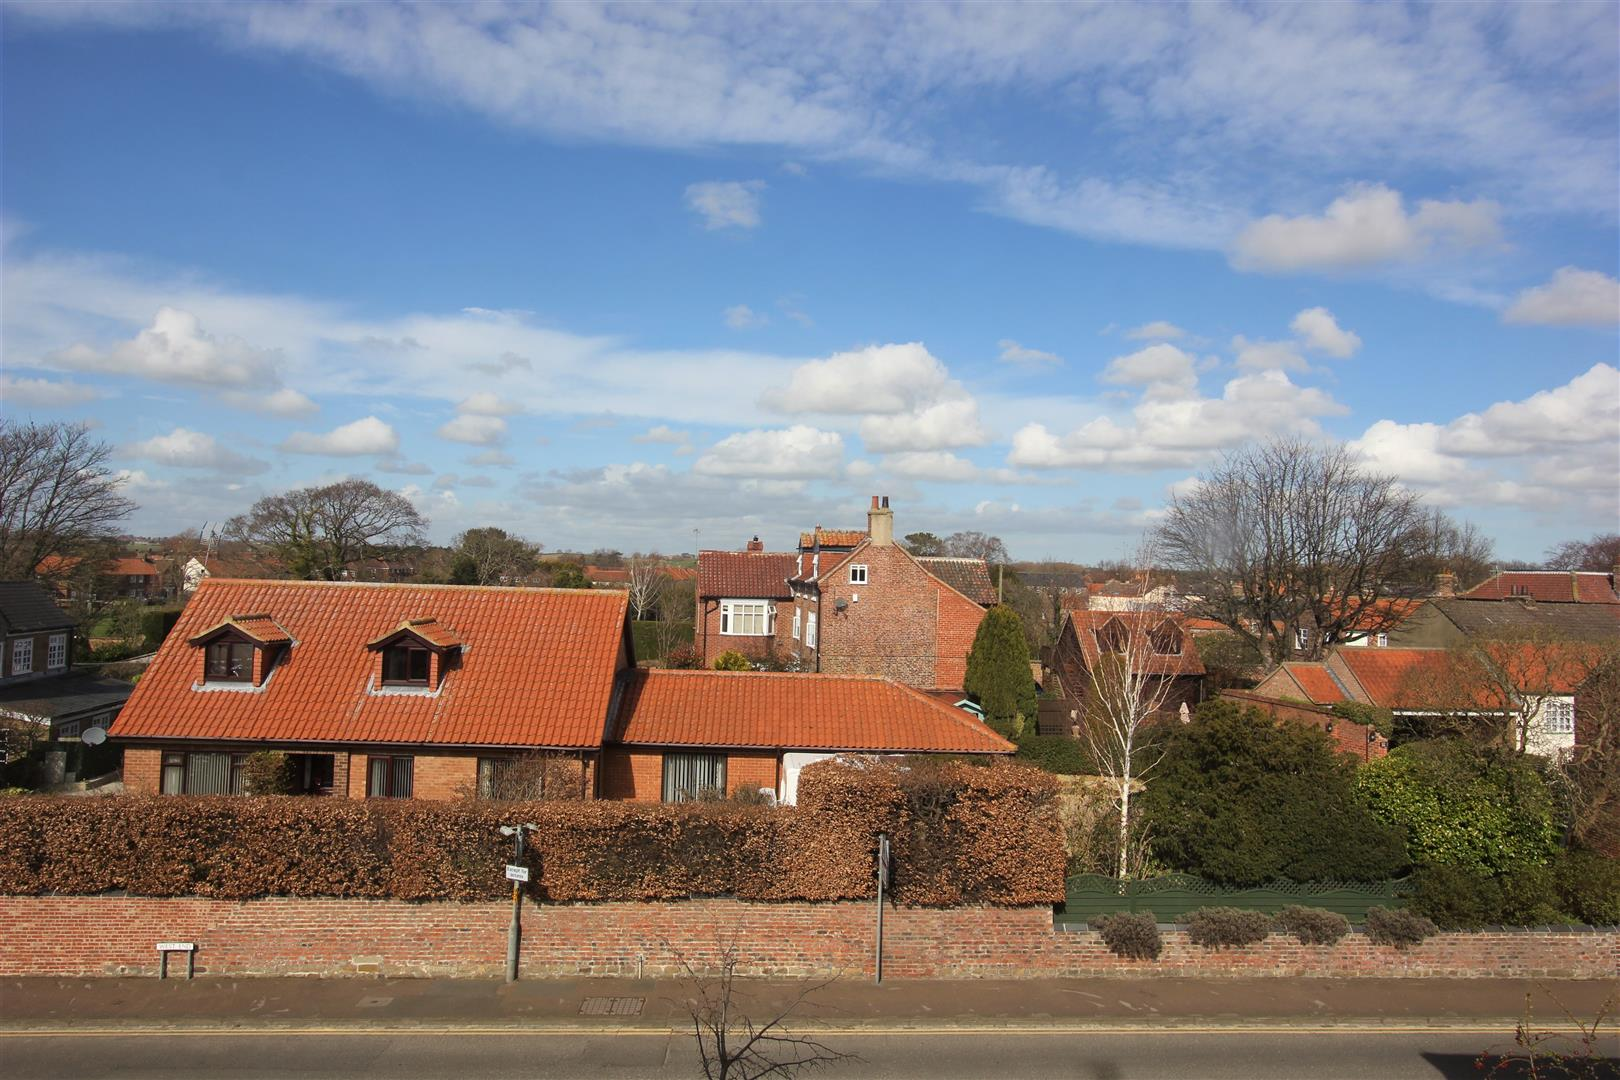 West End, Stokesley, Middlesbrough